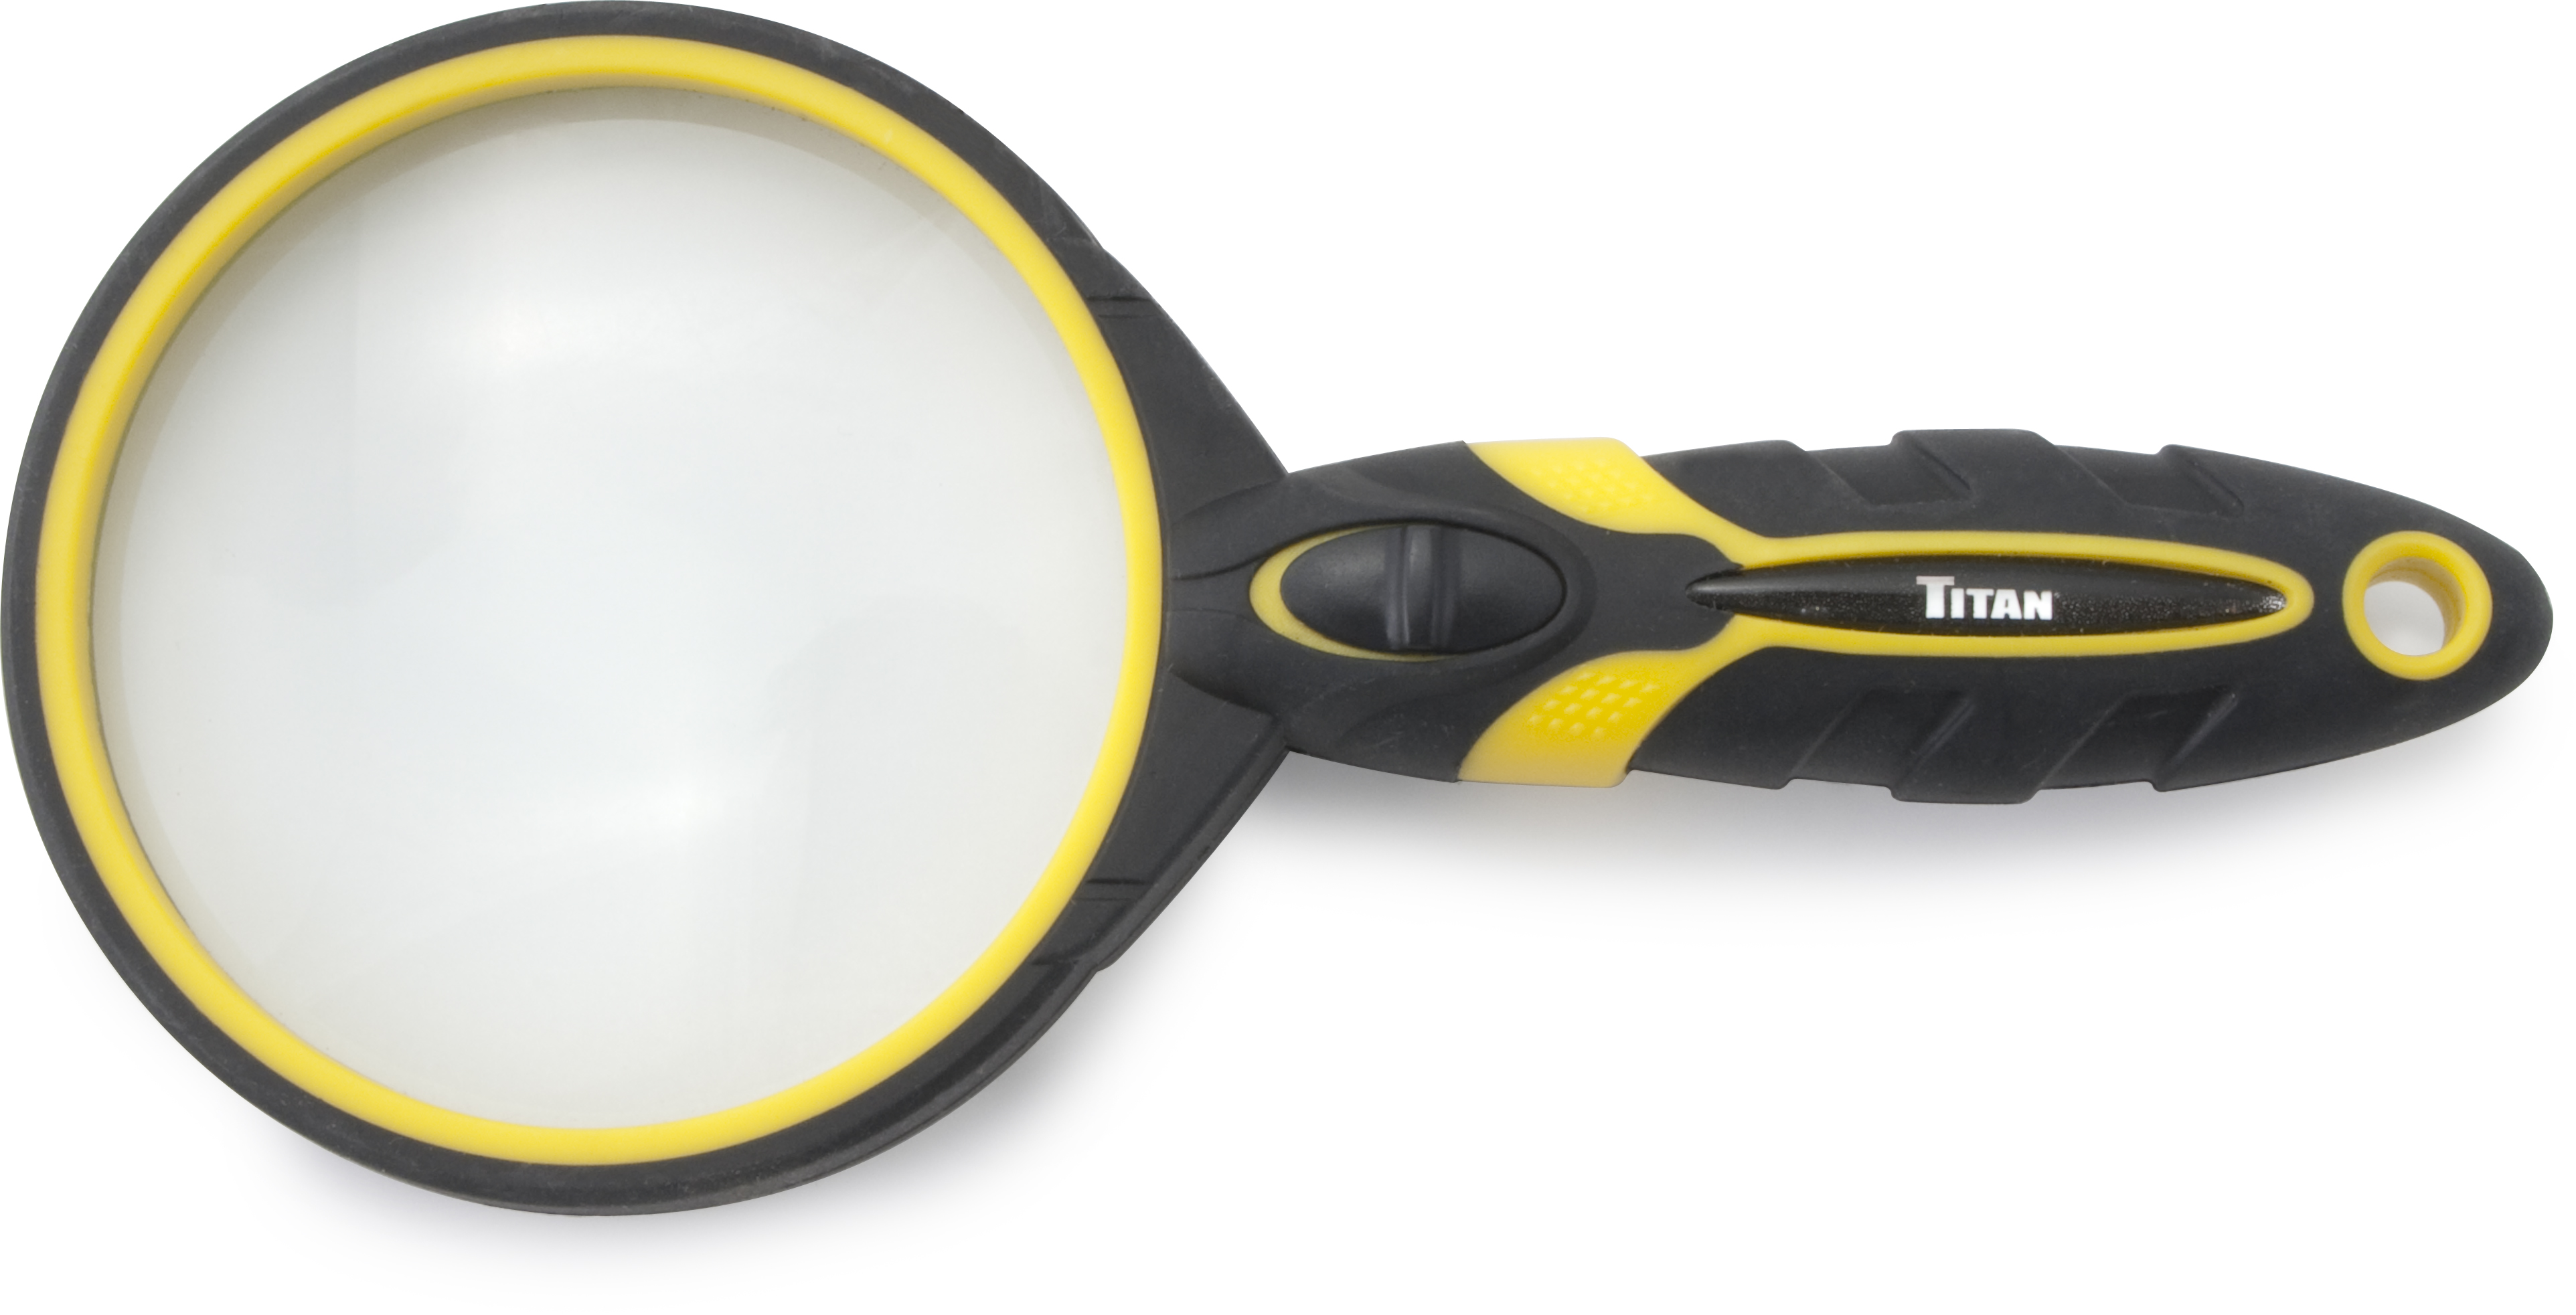 15029 - TITAN 2.2X  MAGNIFYING GLASS WITH LED LIGHT